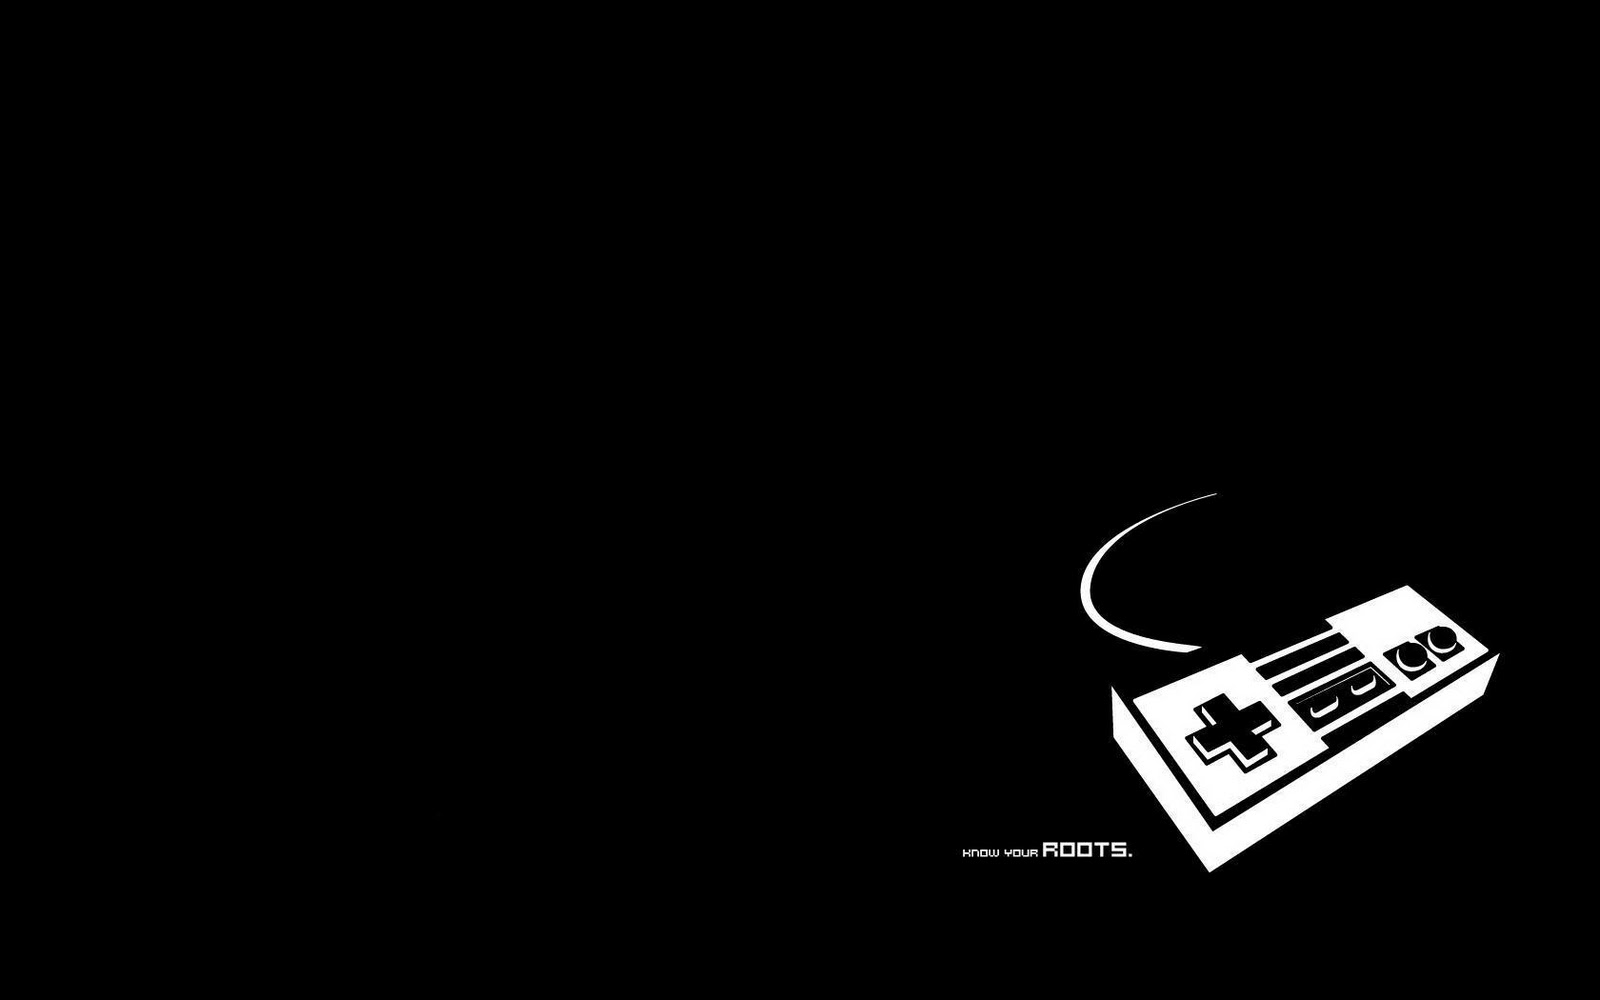 vintage video game desktop wallpaper - photo #26